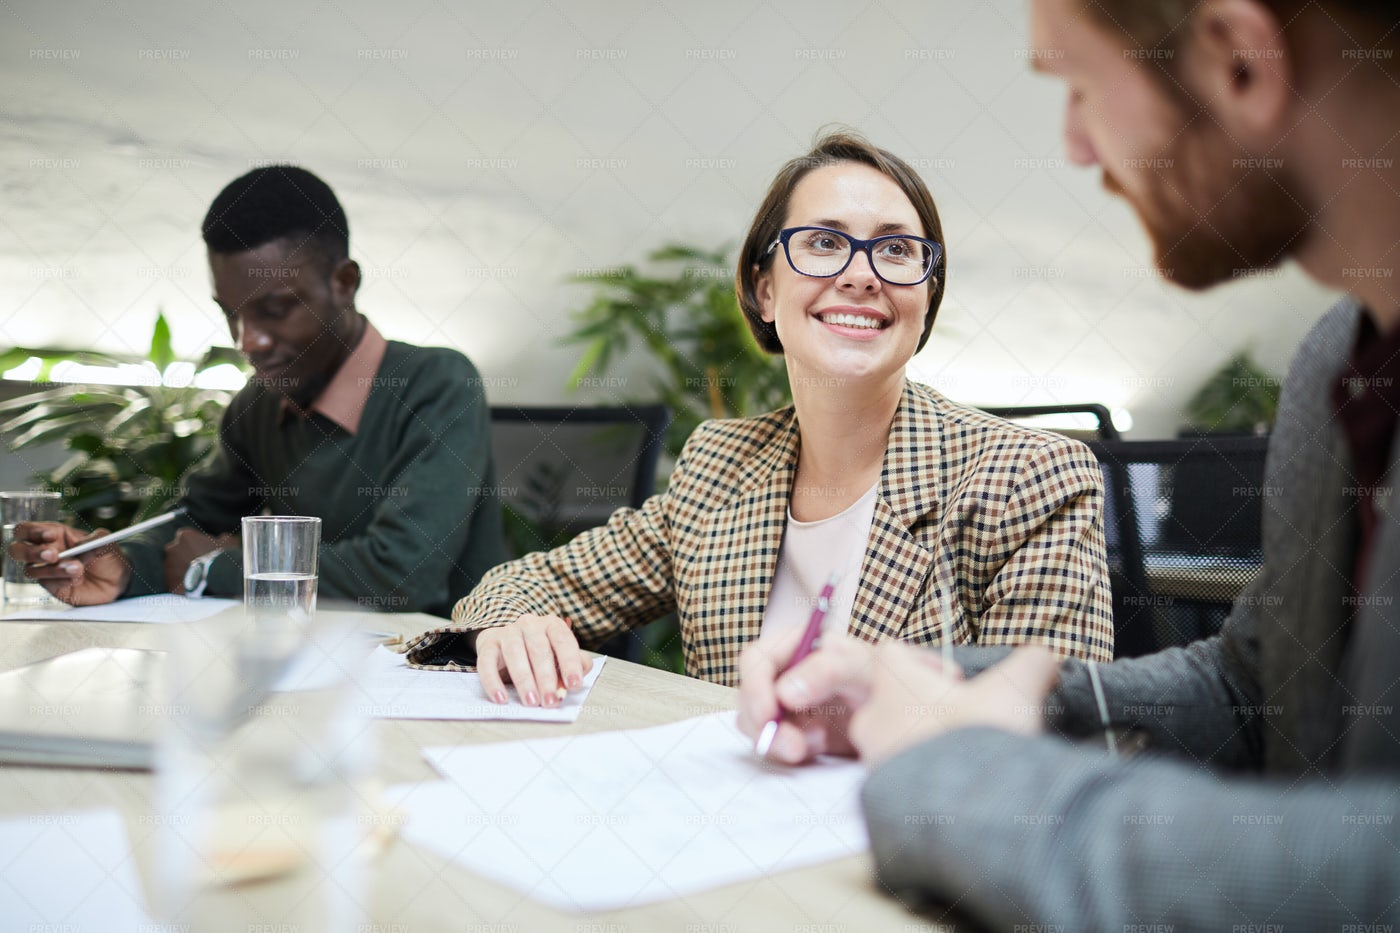 Smiling Business Manager In Meeting: Stock Photos